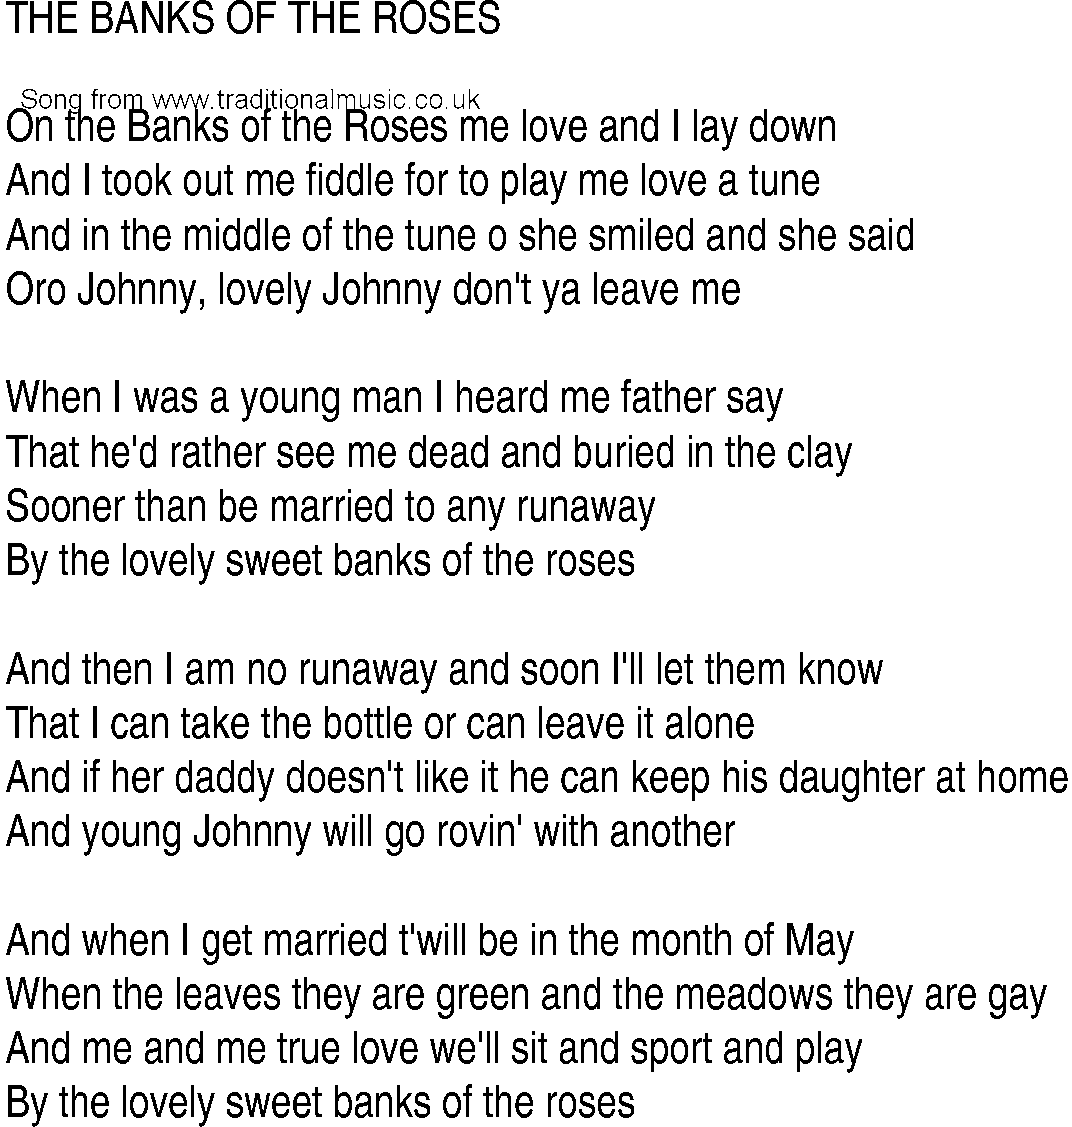 Irish Music Song And Ballad Lyrics For Banks Of The Roses